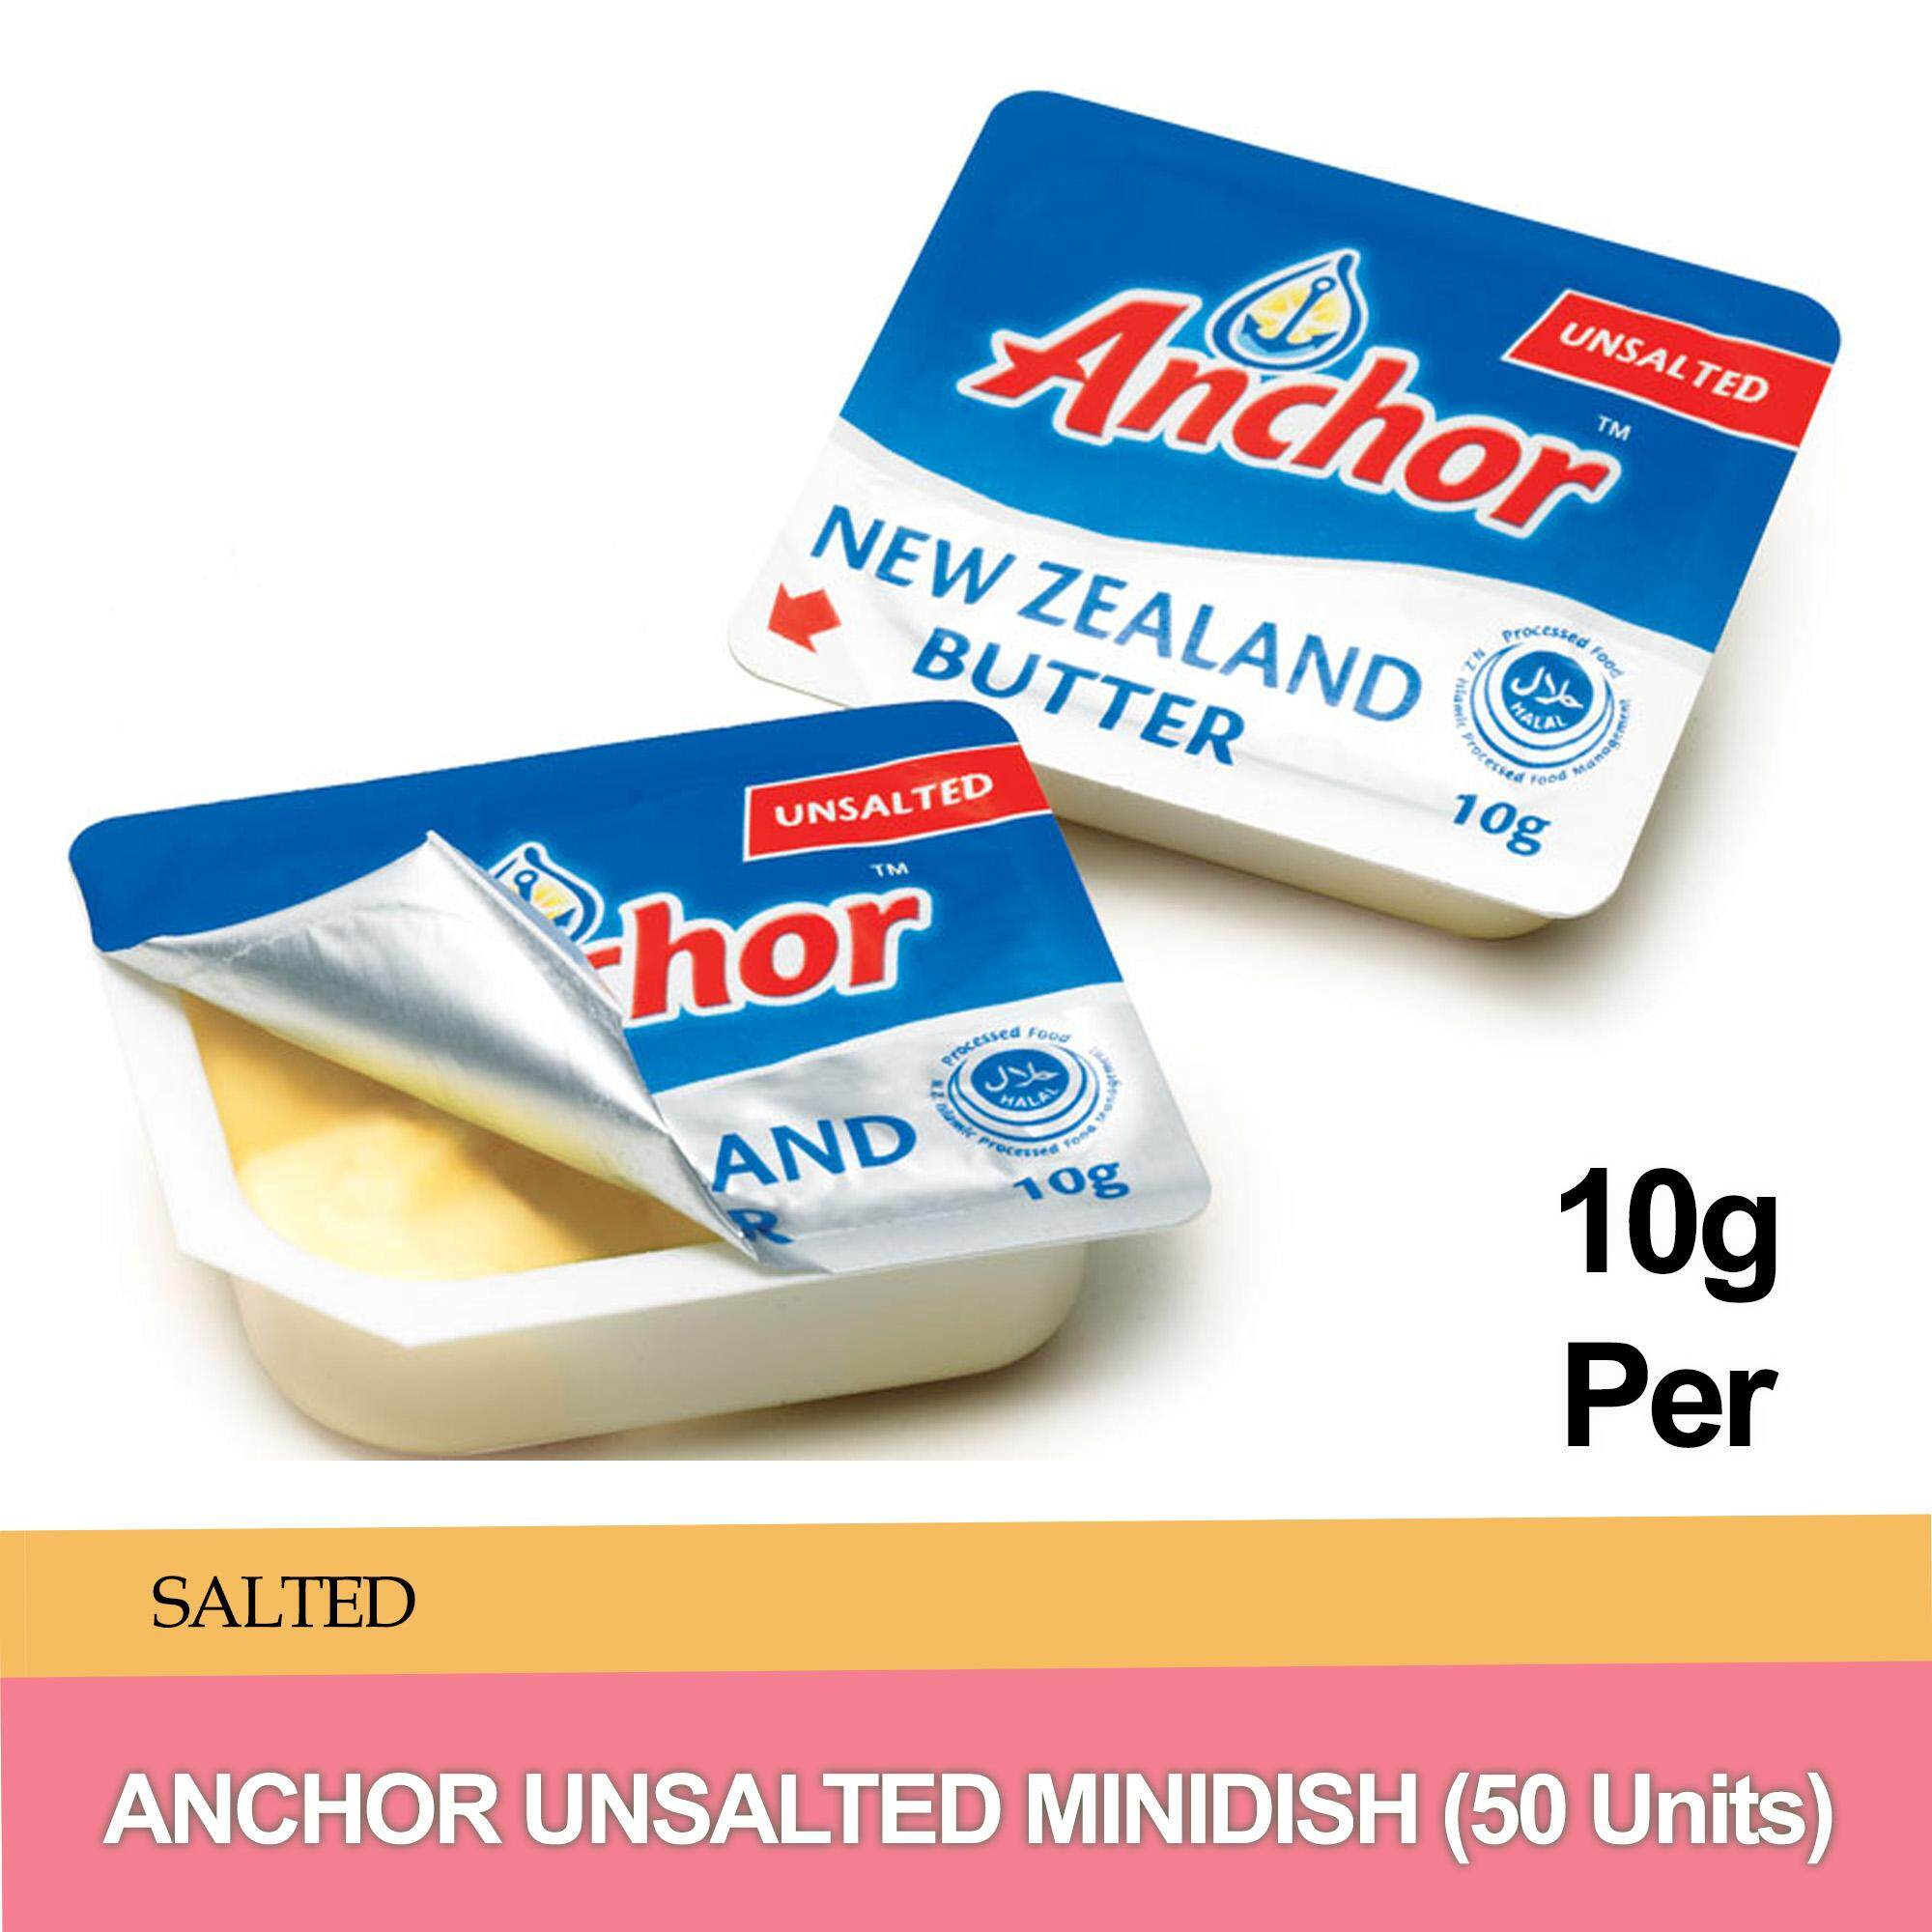 Anchor Unsalted Minidish Butter 10g (50 Units) – Imported, Halal Certified, New Zealand's Trusted Brand, Made From 100% Pure New Zealand Milk By Lumisky Resources.